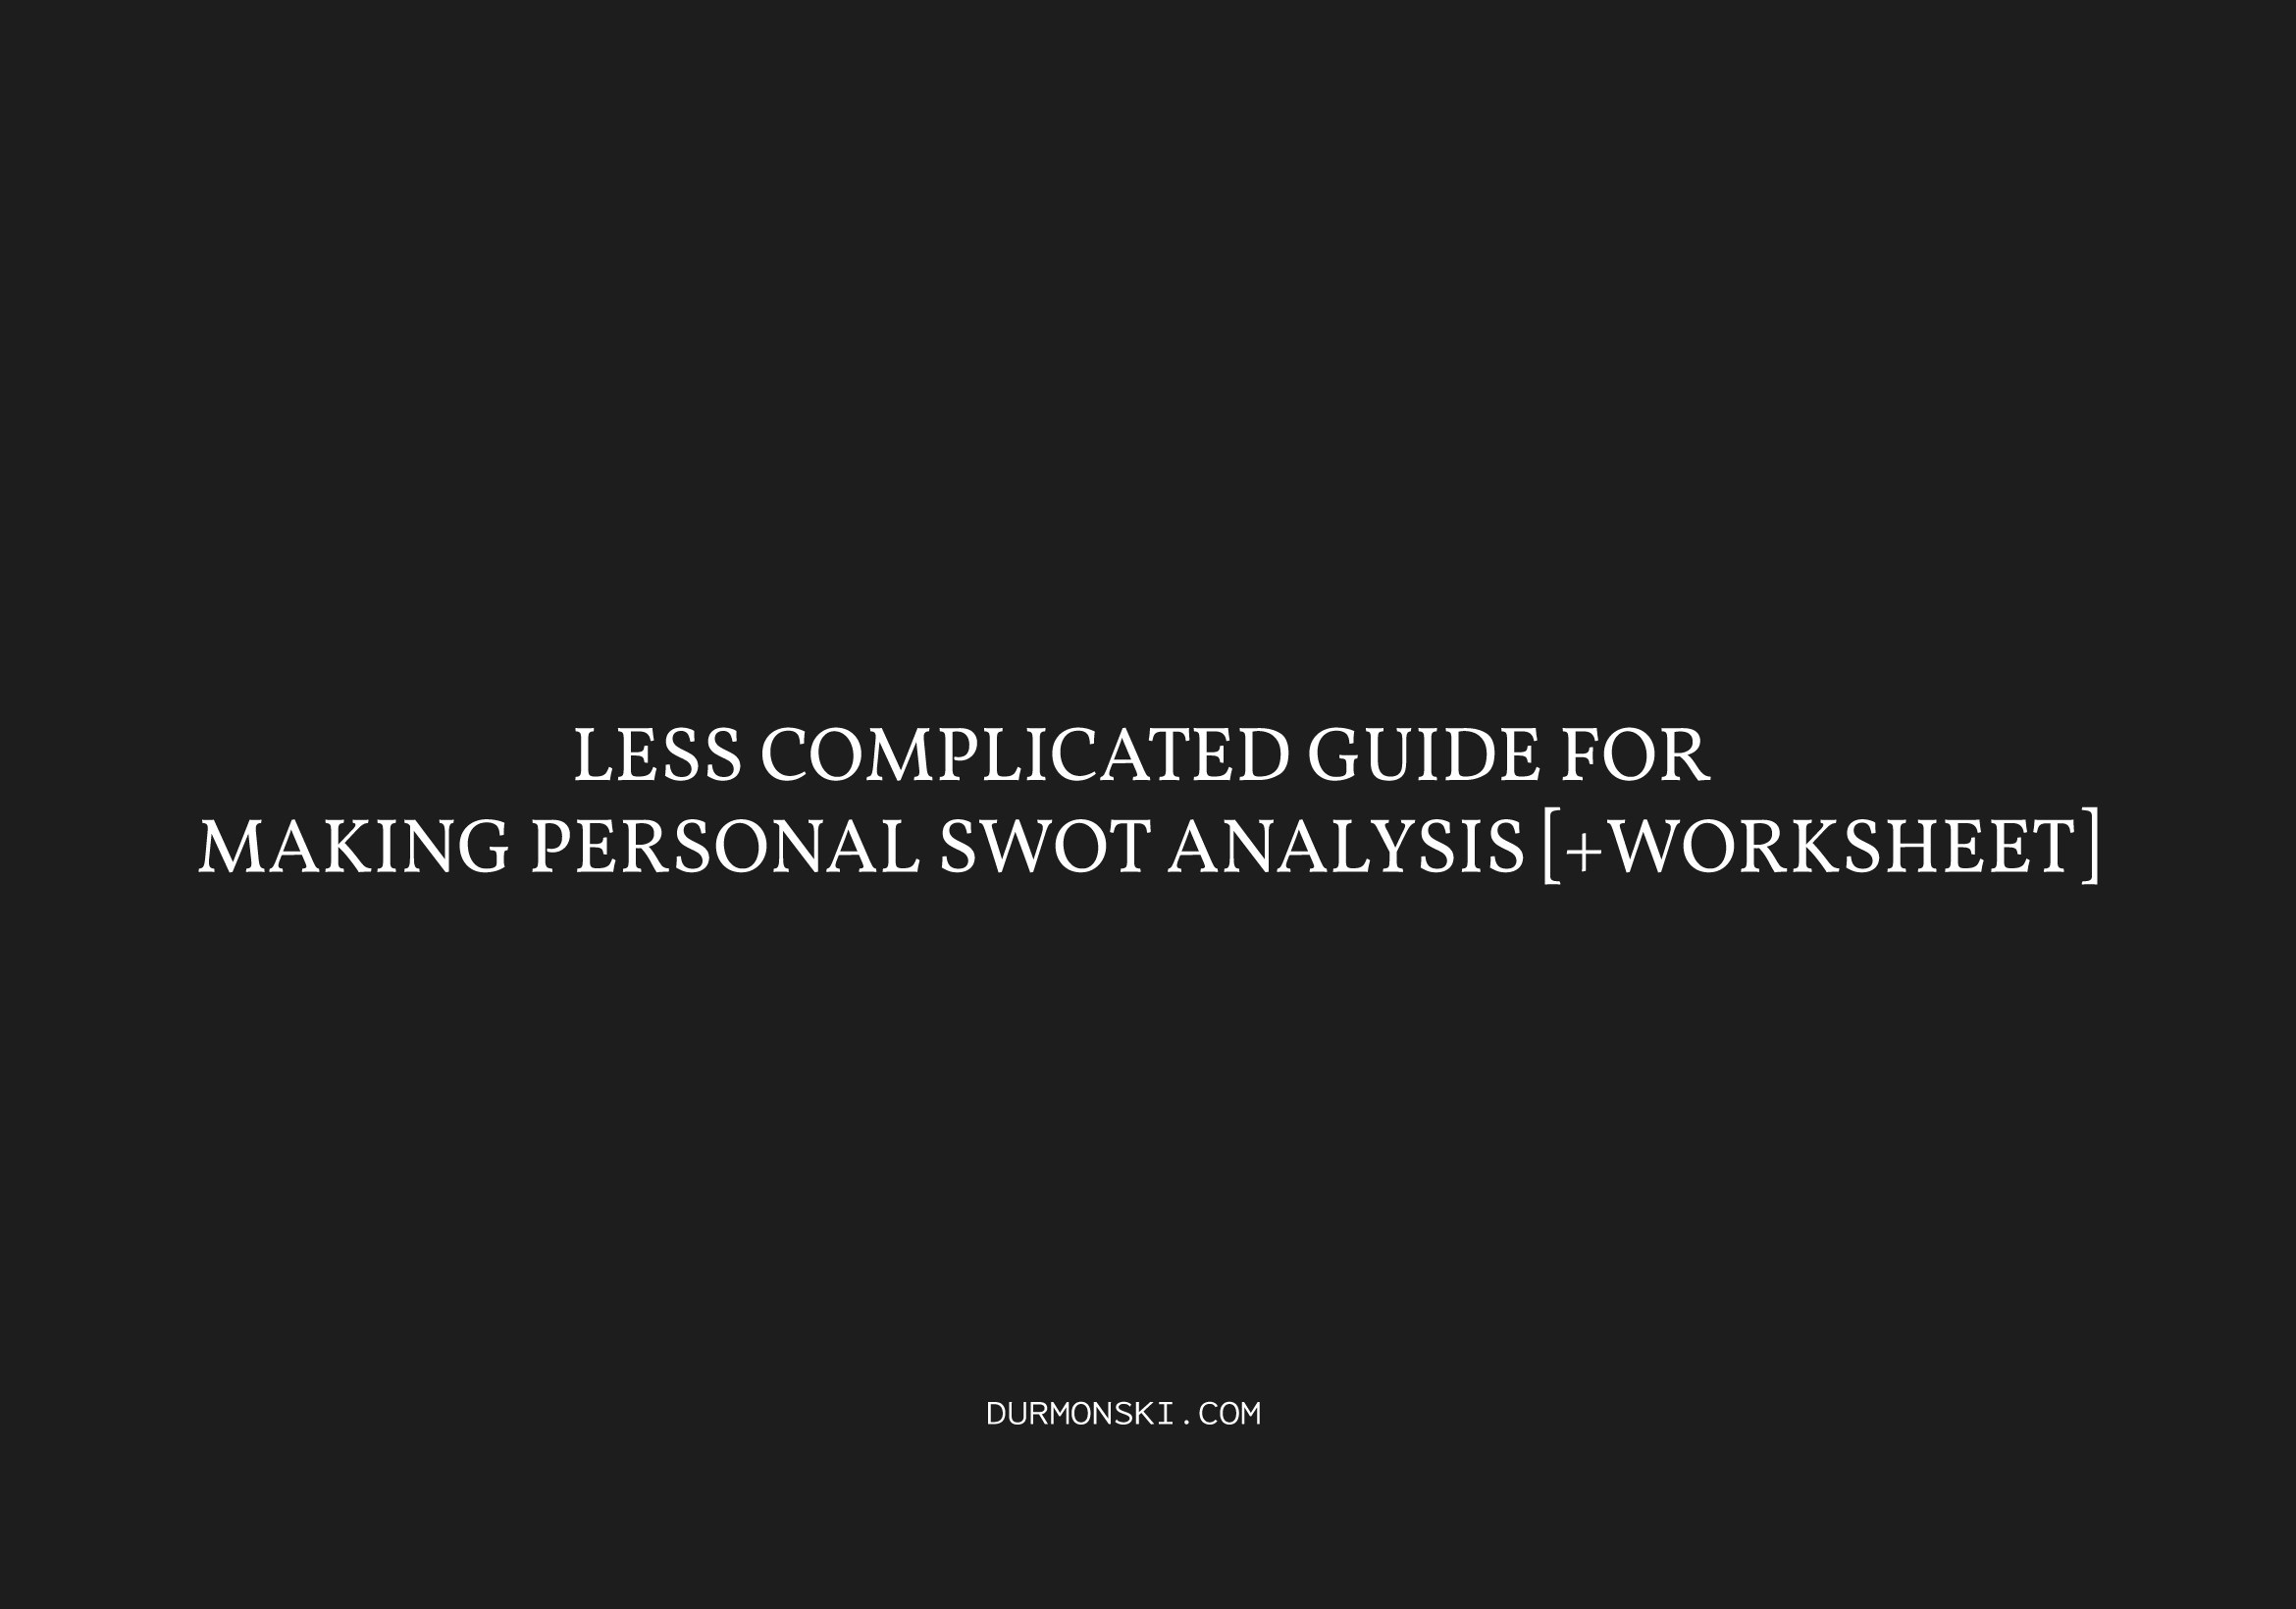 Less Complicated Guide For Making Personal Swotysis